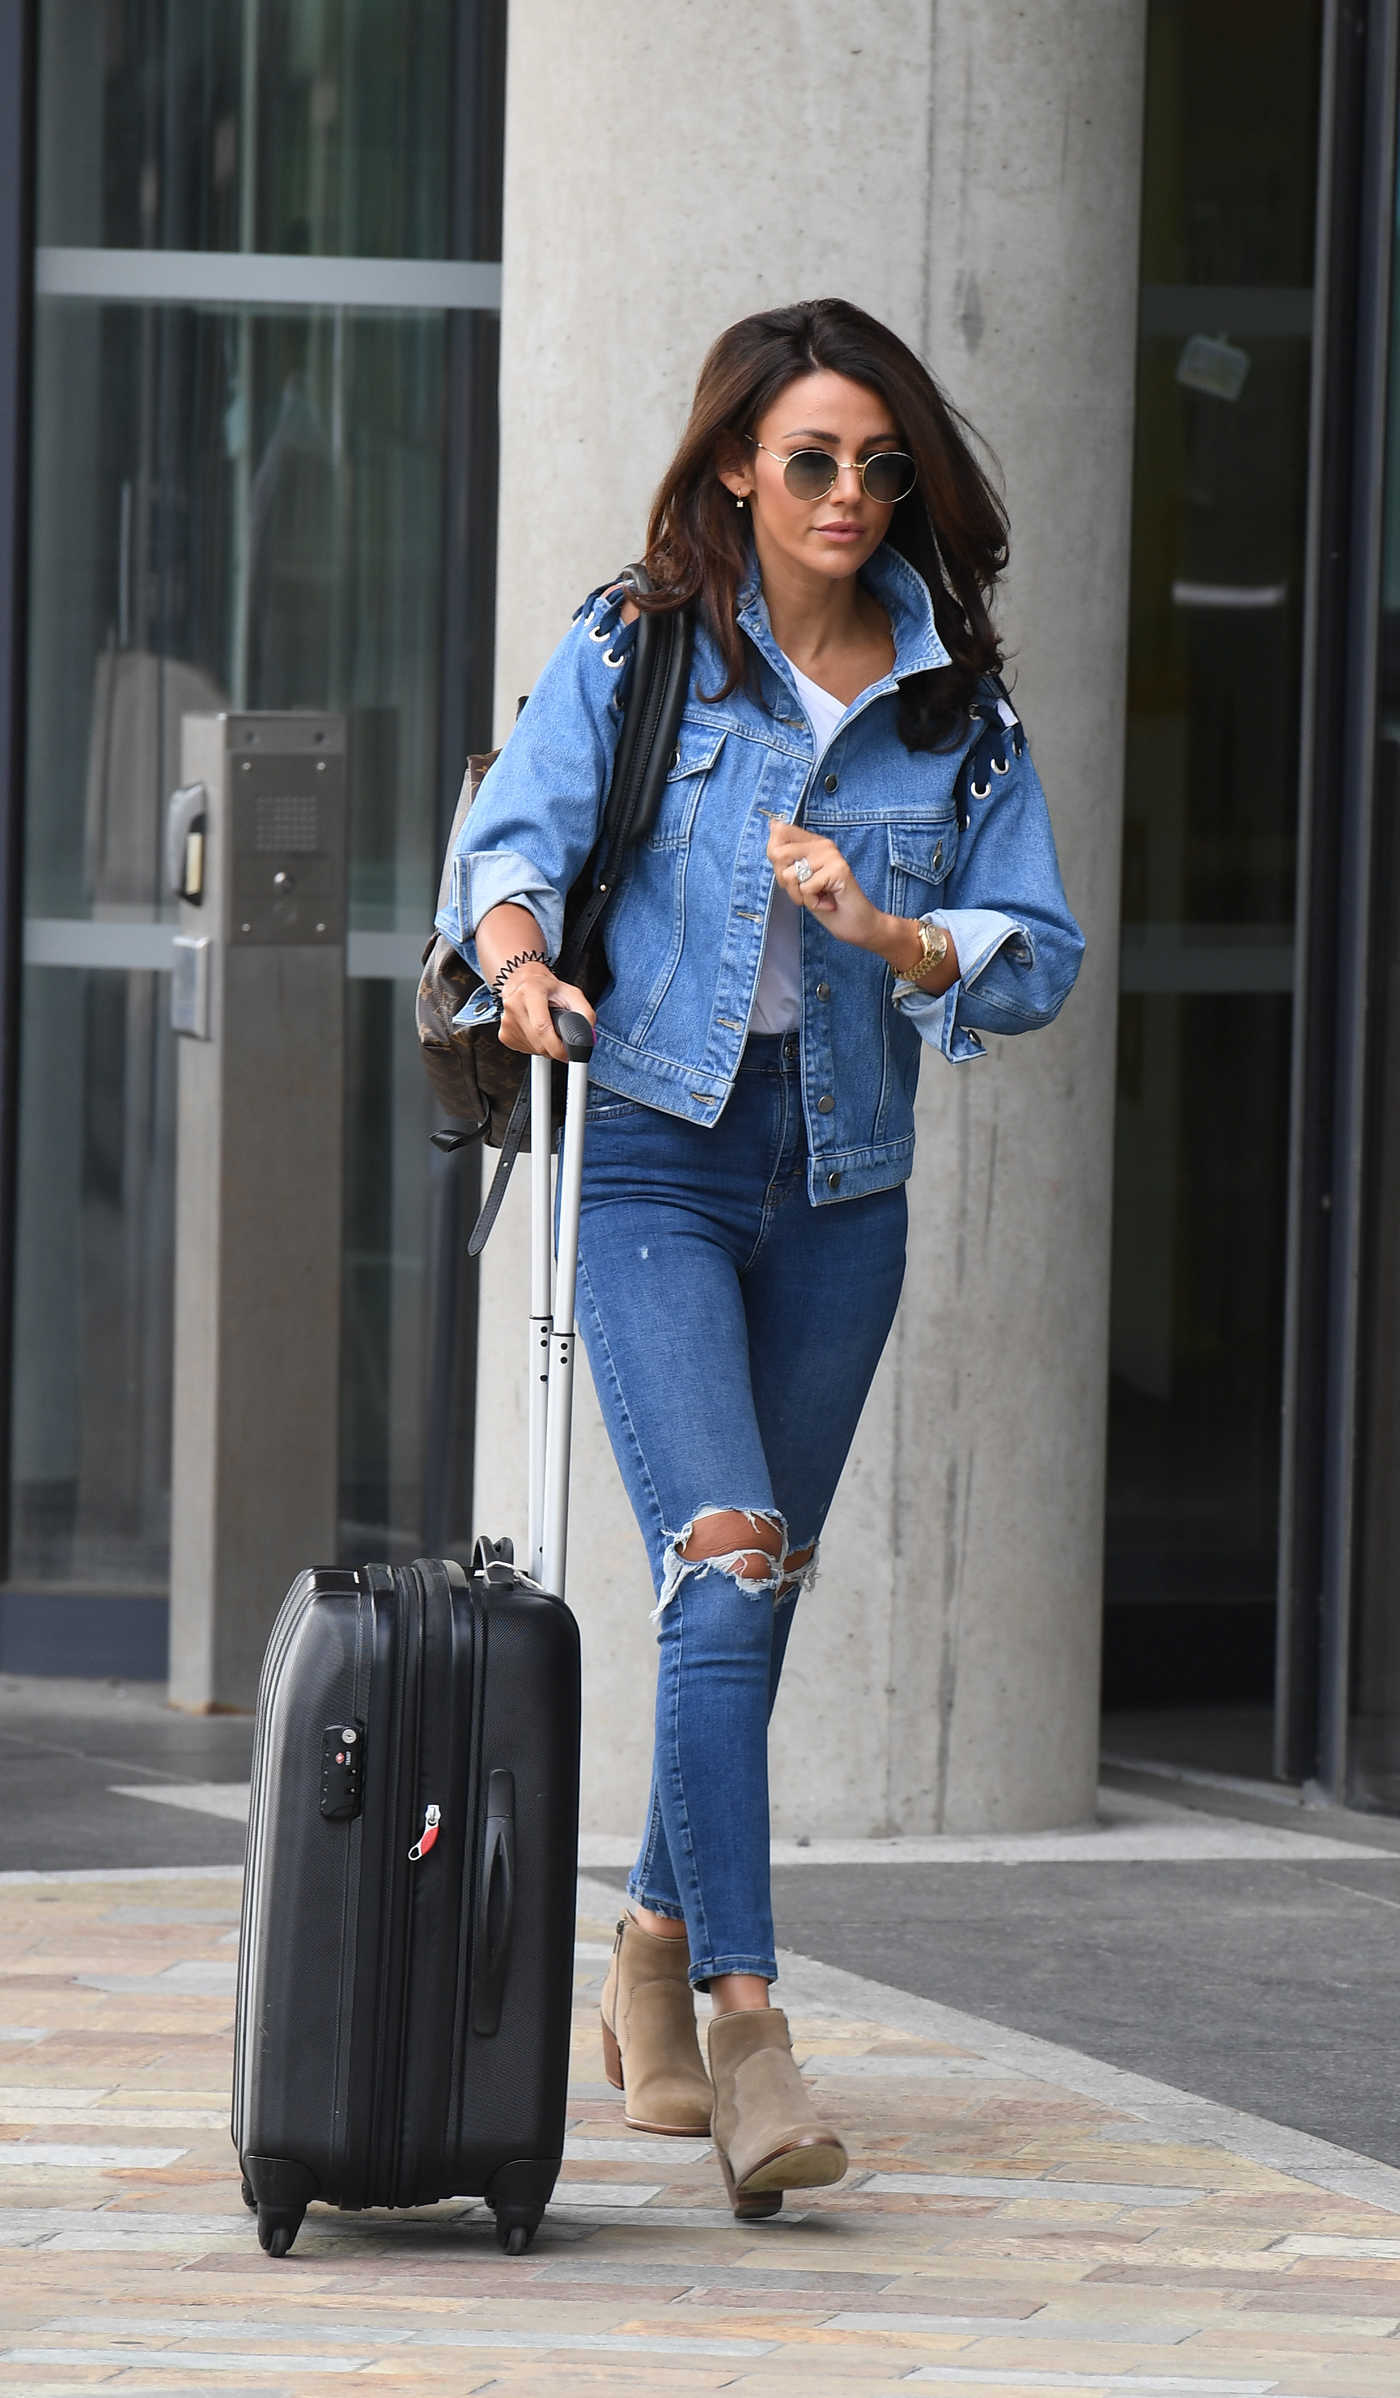 Michelle Keegan Arrives at BBC Studios in Manchester 07/18/2018